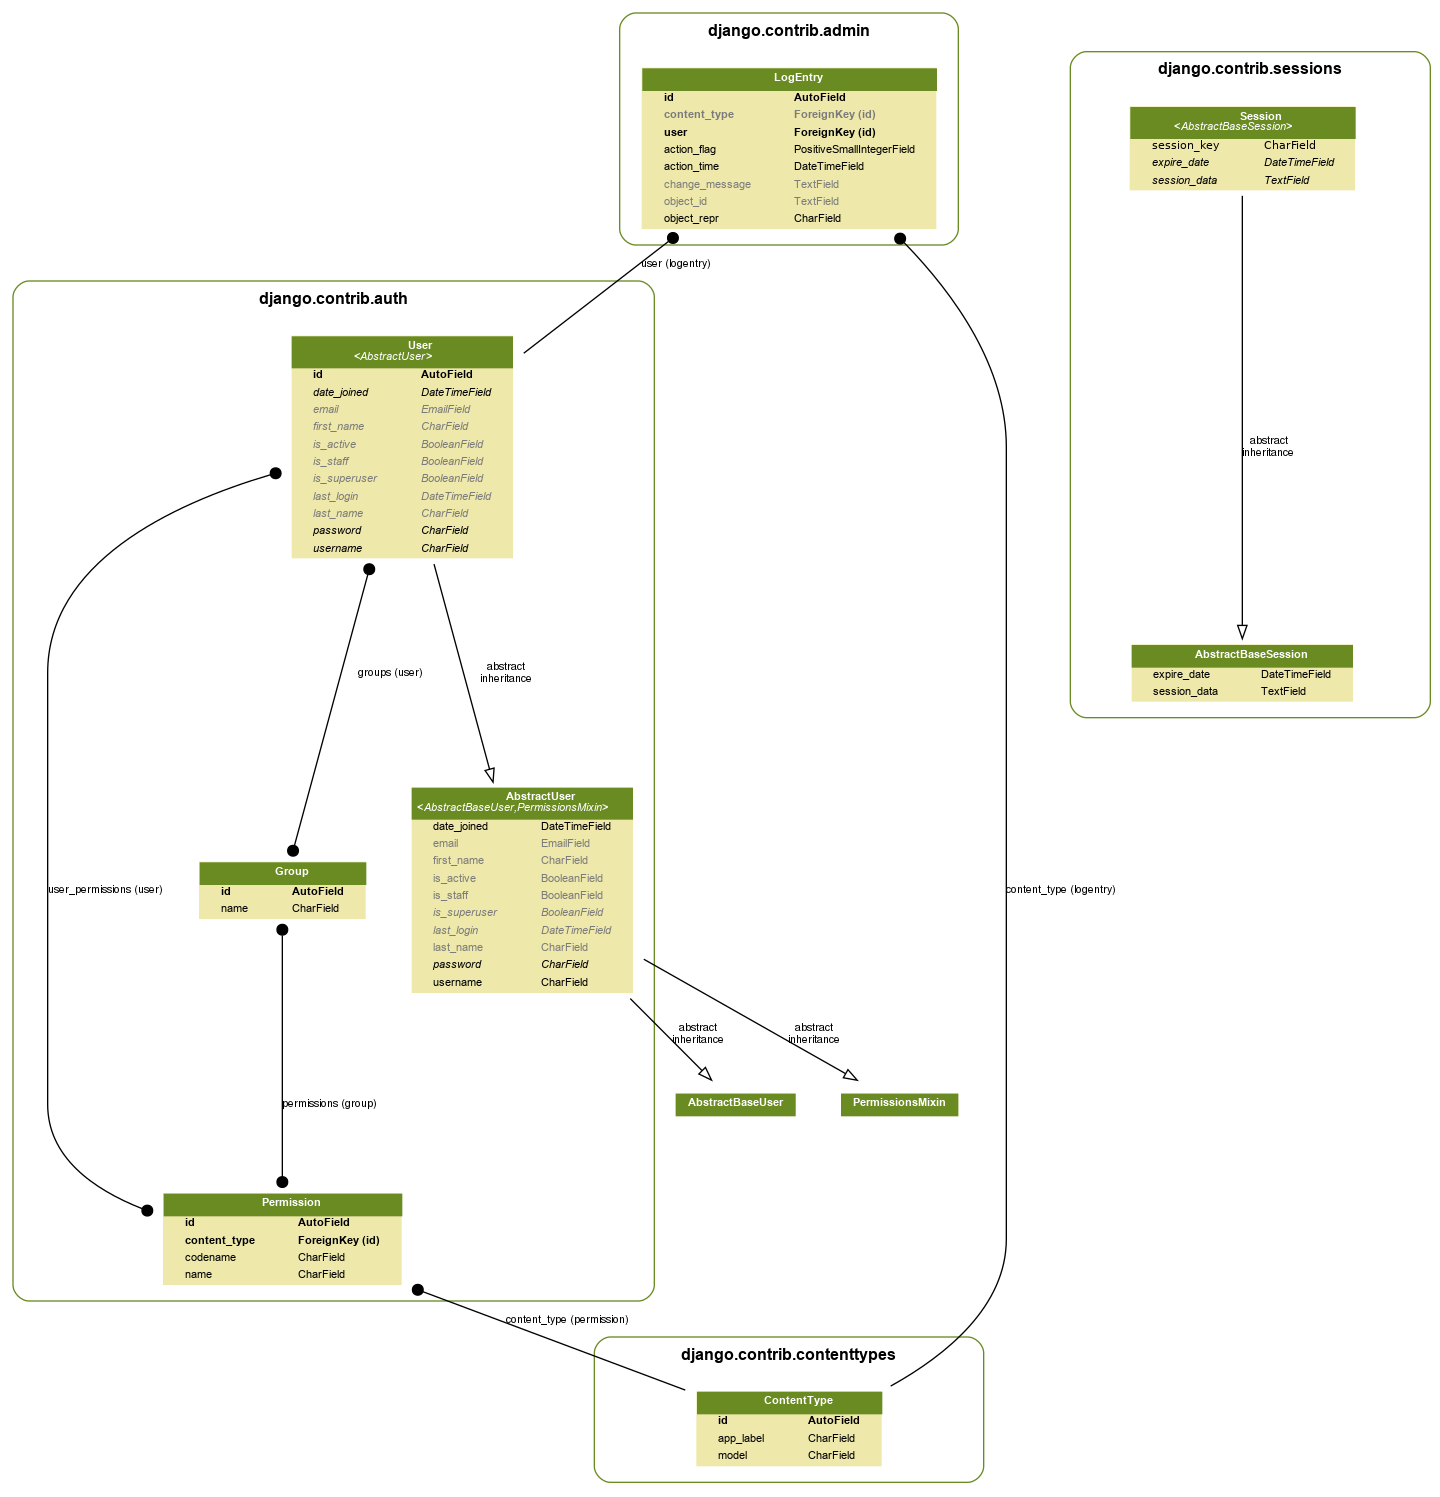 generate uml class diagrams from django models